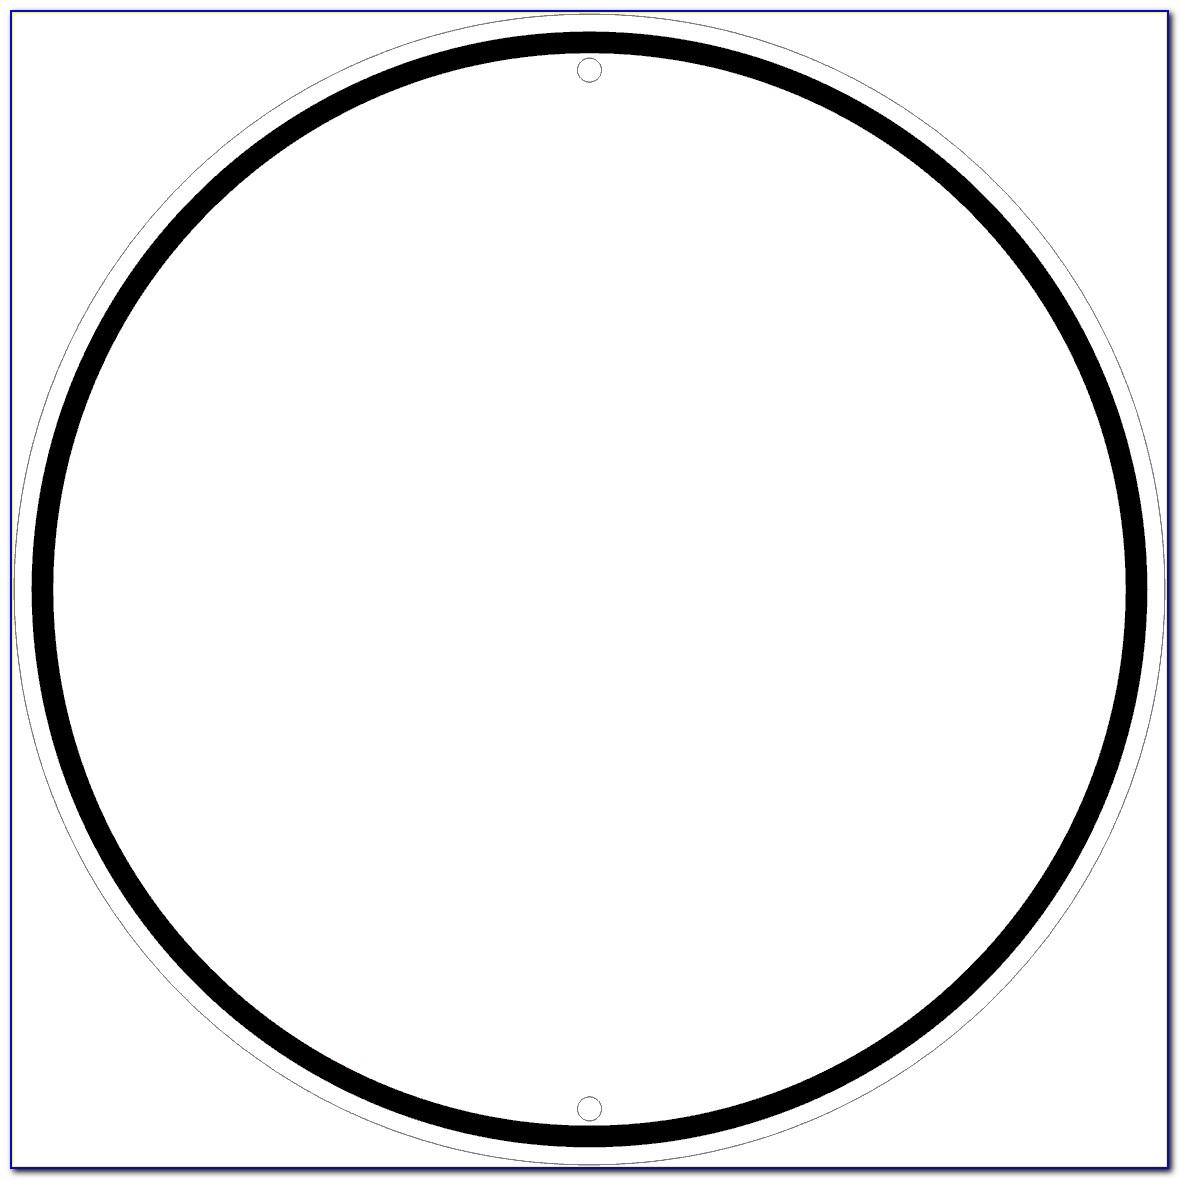 2 Inch Circle Template Photoshop